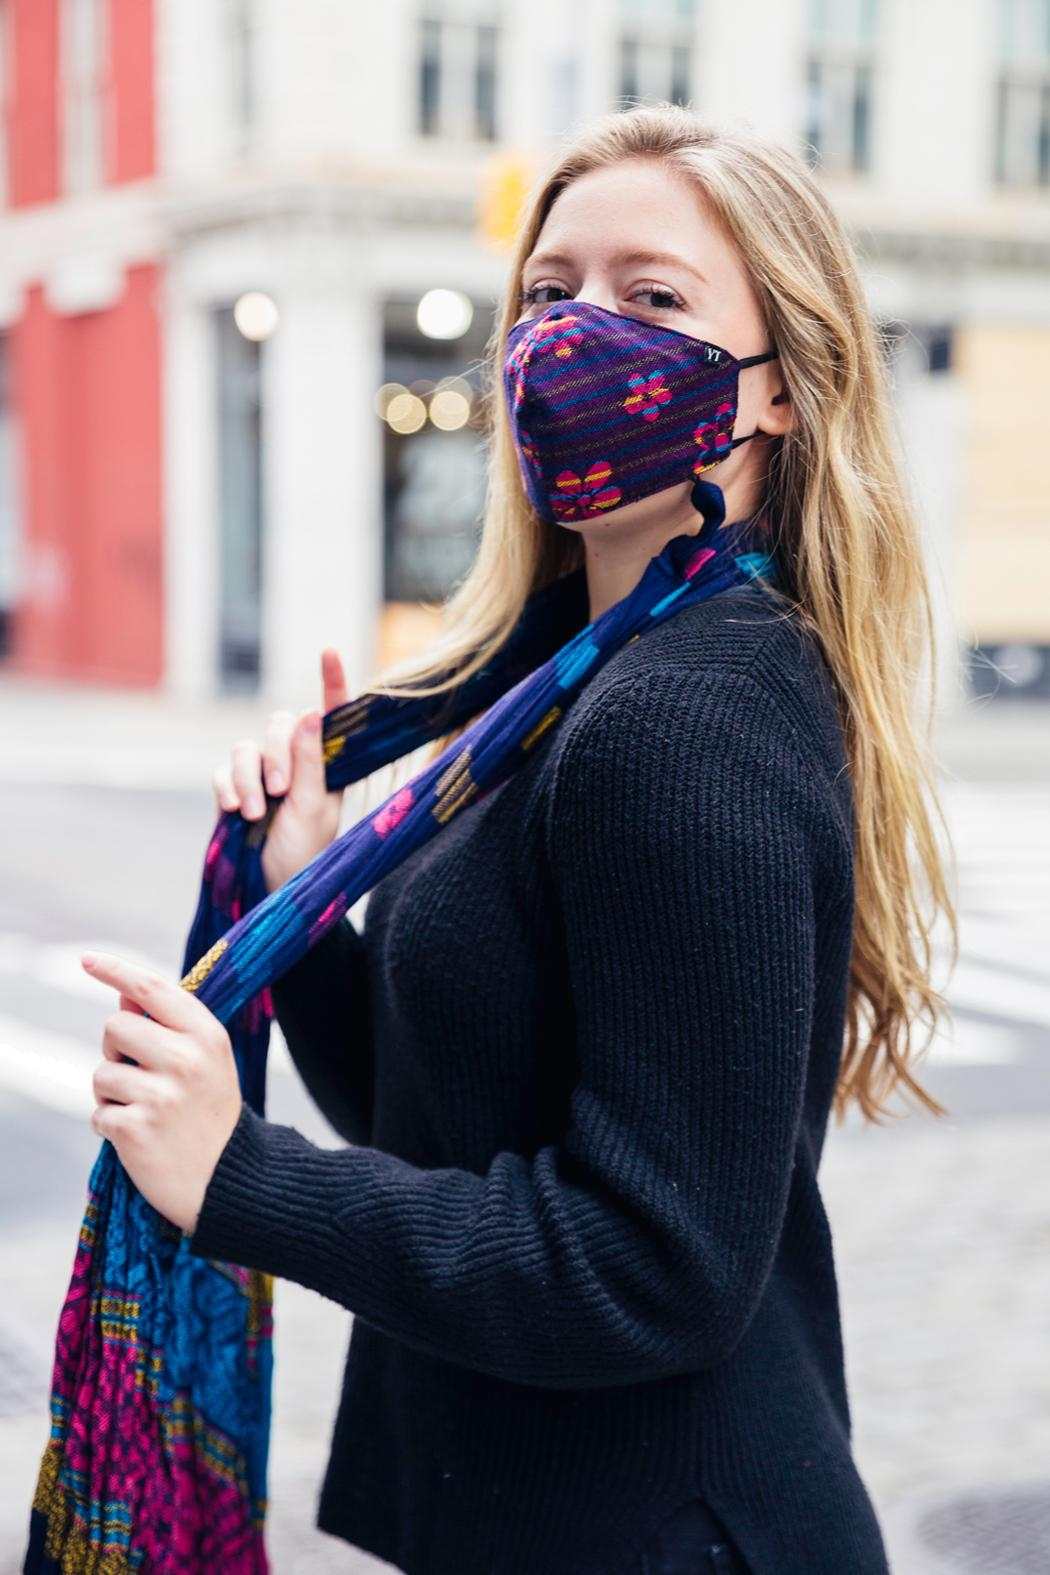 Young Threads Scarf With Mask Set, Reversible Scarf Secured With Button Closure, Adjustable Straps + Triple Layer Mask. Fall Fashion Masks. - Main Image